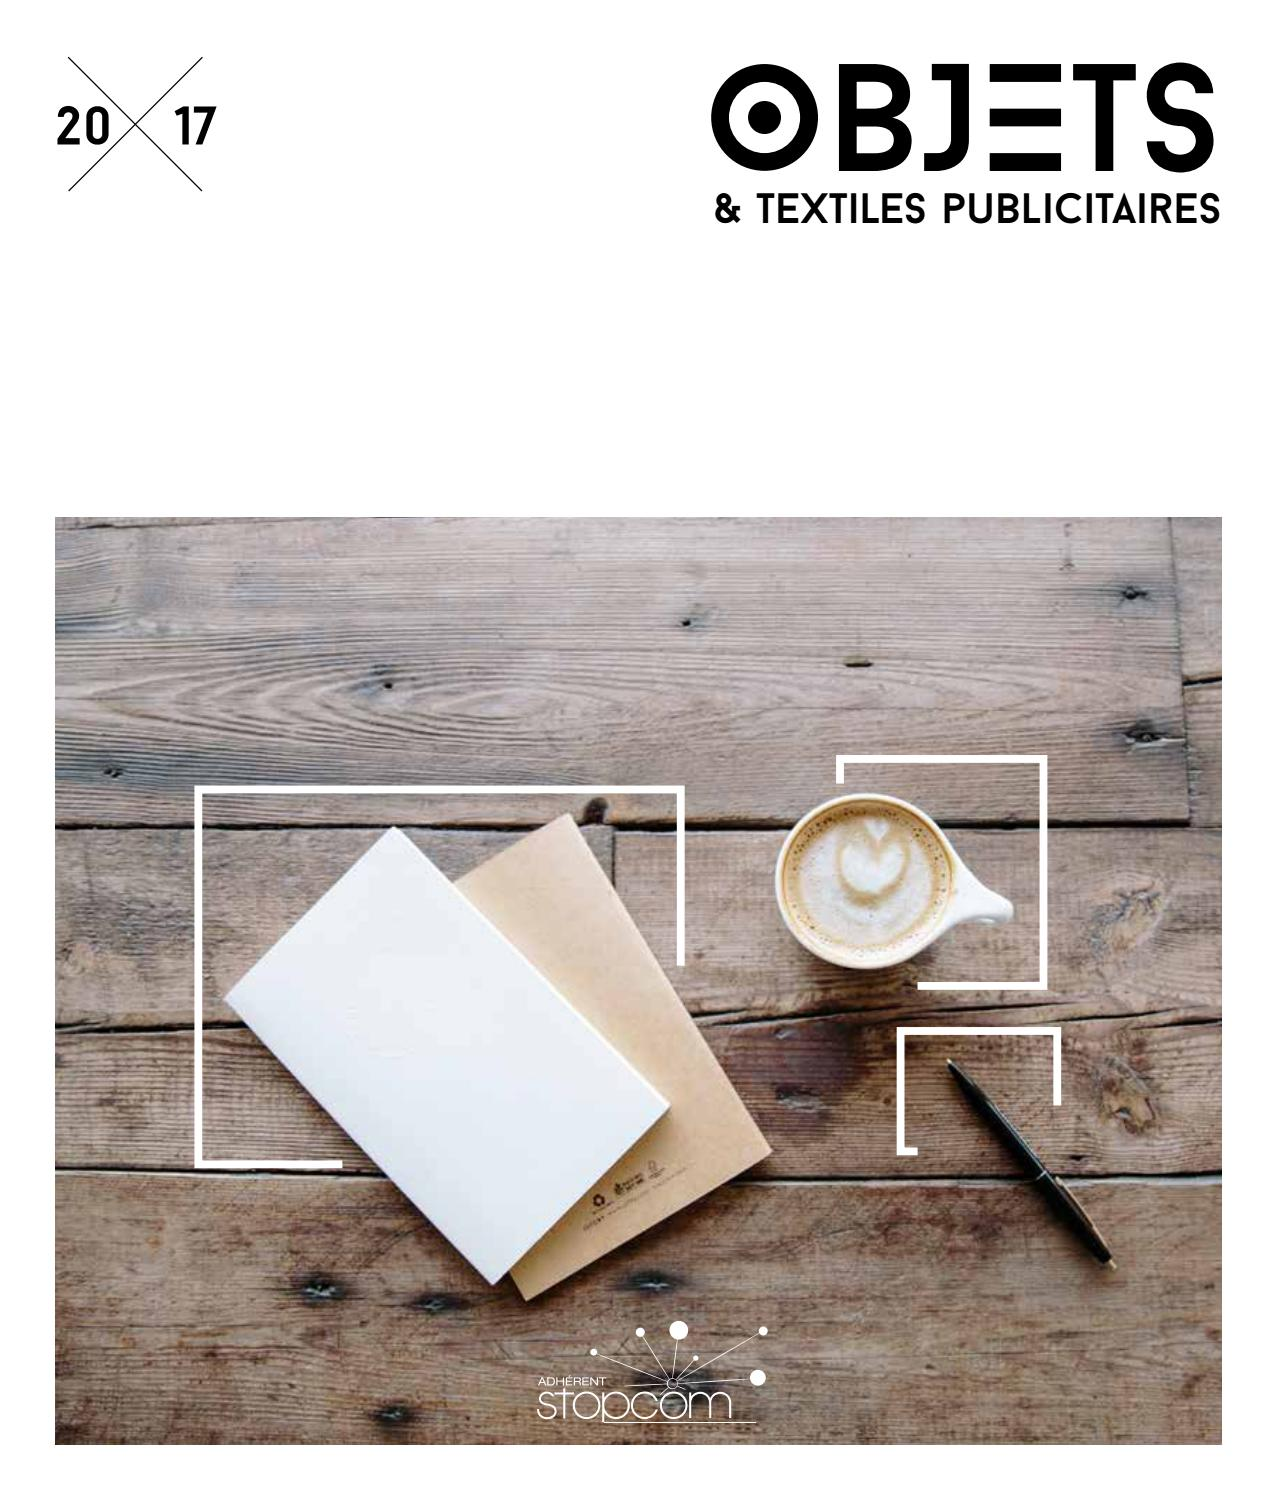 f66fa7fdbf Objets & Textiles publicitaires 2017 - STOPCOM by Objectif Goodies - issuu